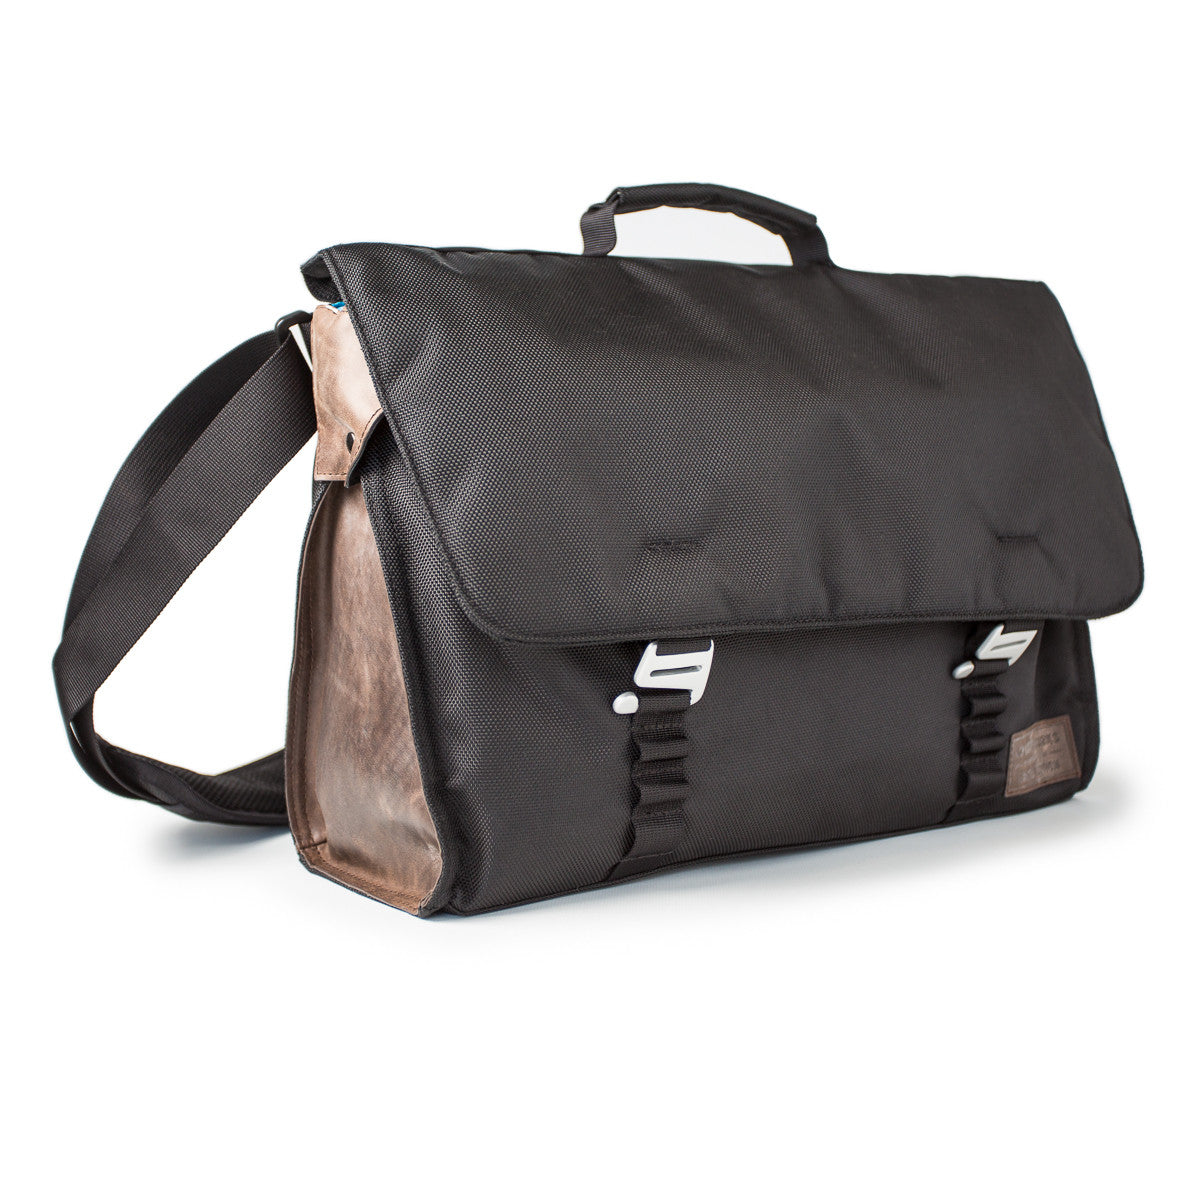 Northwest Messenger Bag Messenger Bags - Looptworks